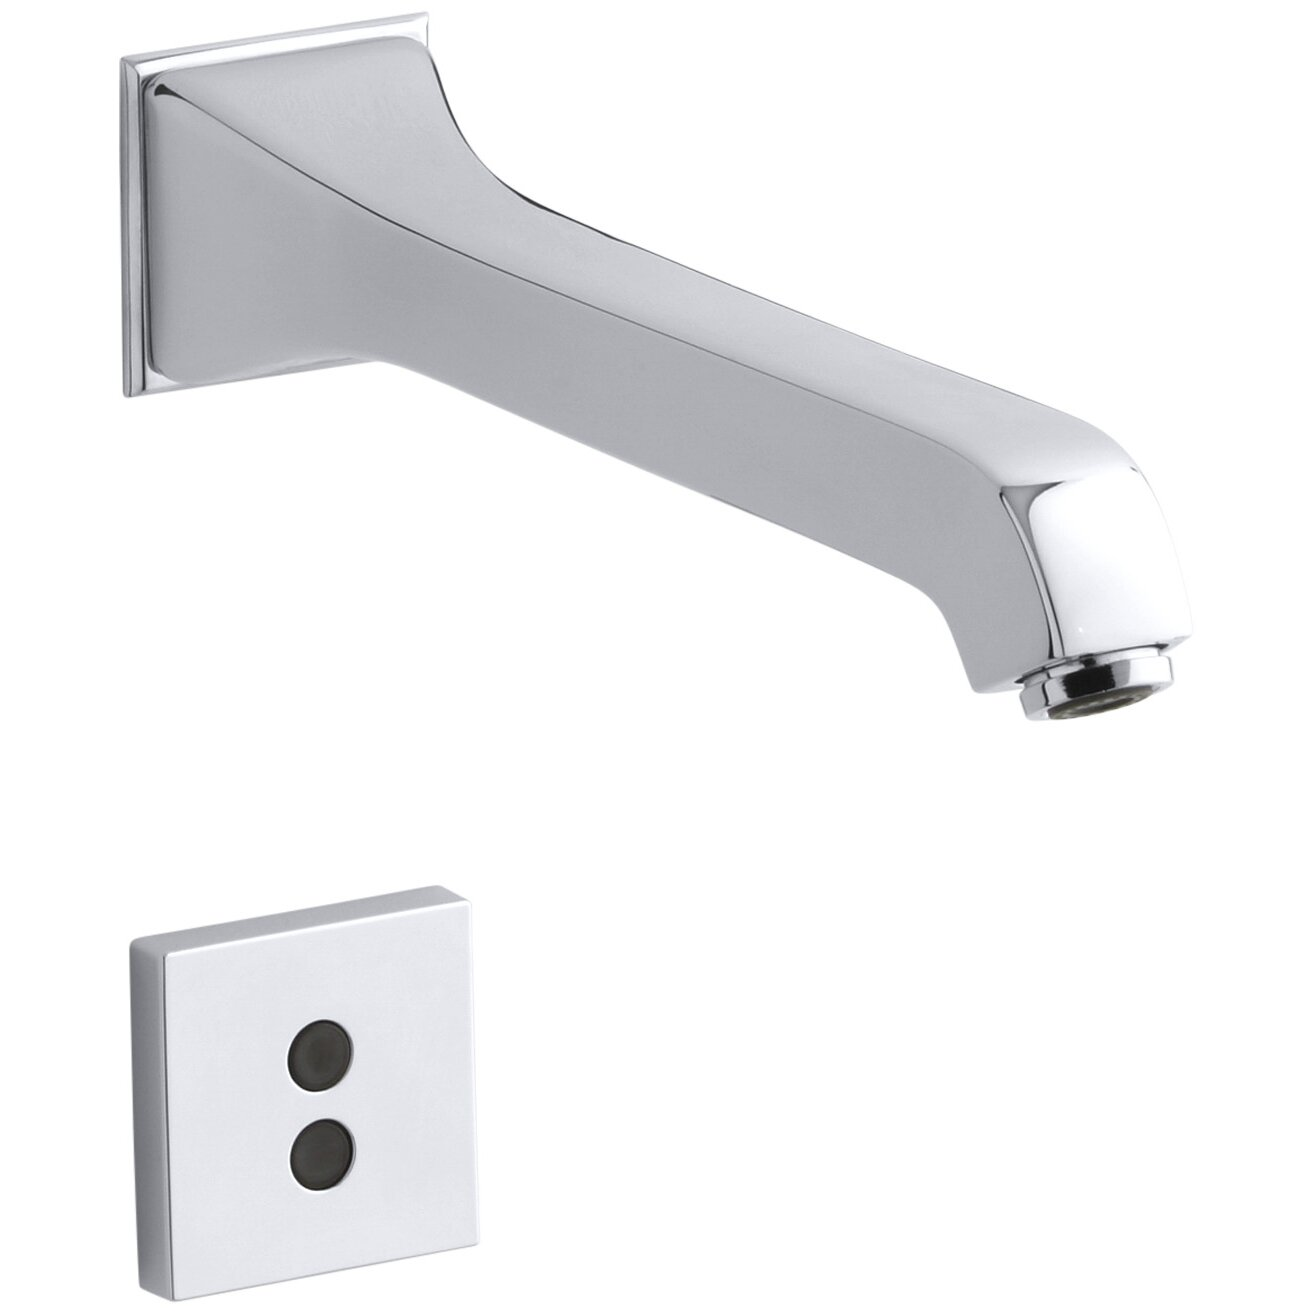 Memoirs Wall Mount Commercial Bathroom Sink Faucet With 8 3 16 Spout